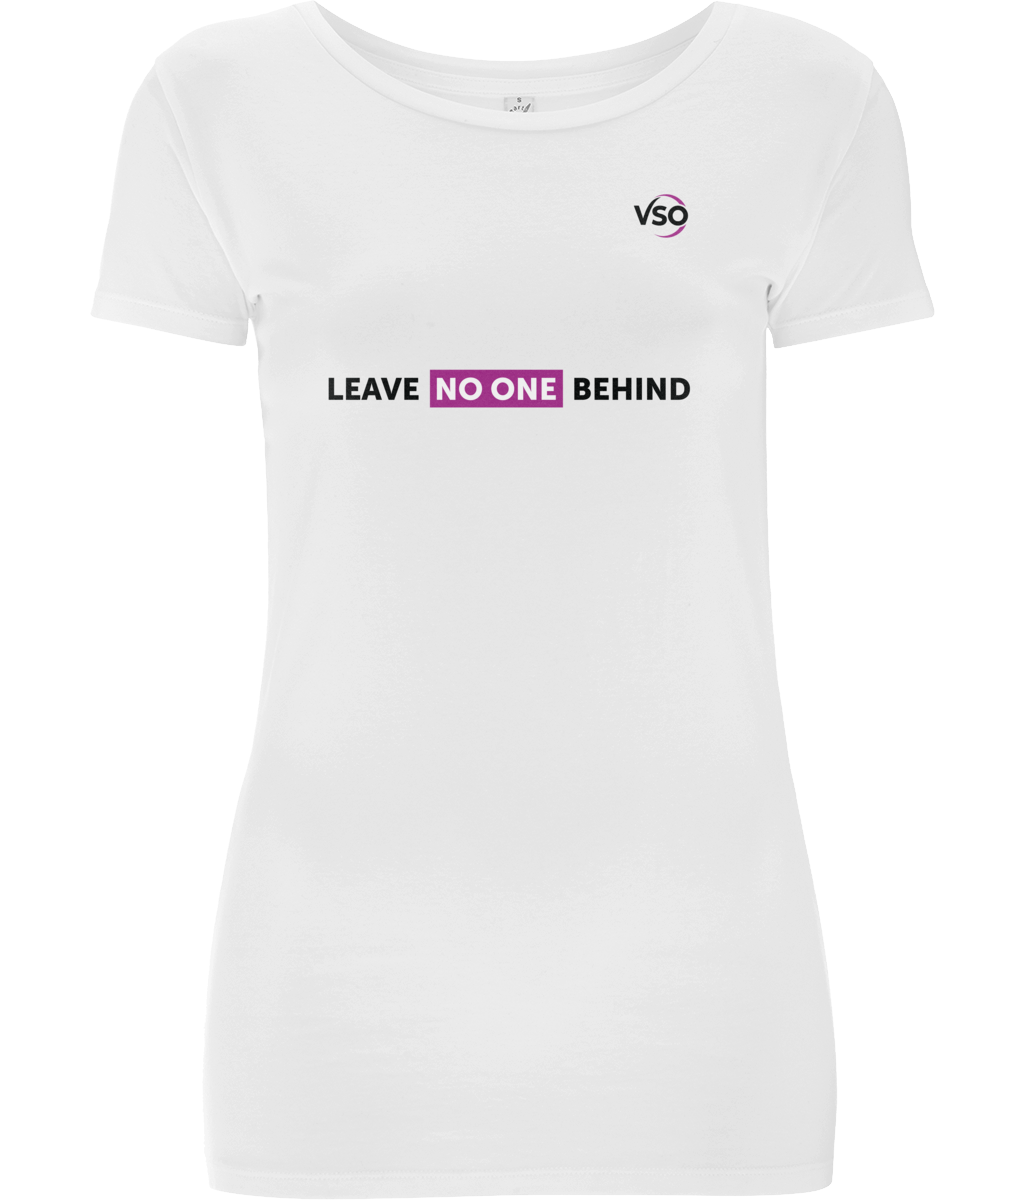 Leave No One Behind Classic Stretch Women's T-Shirt